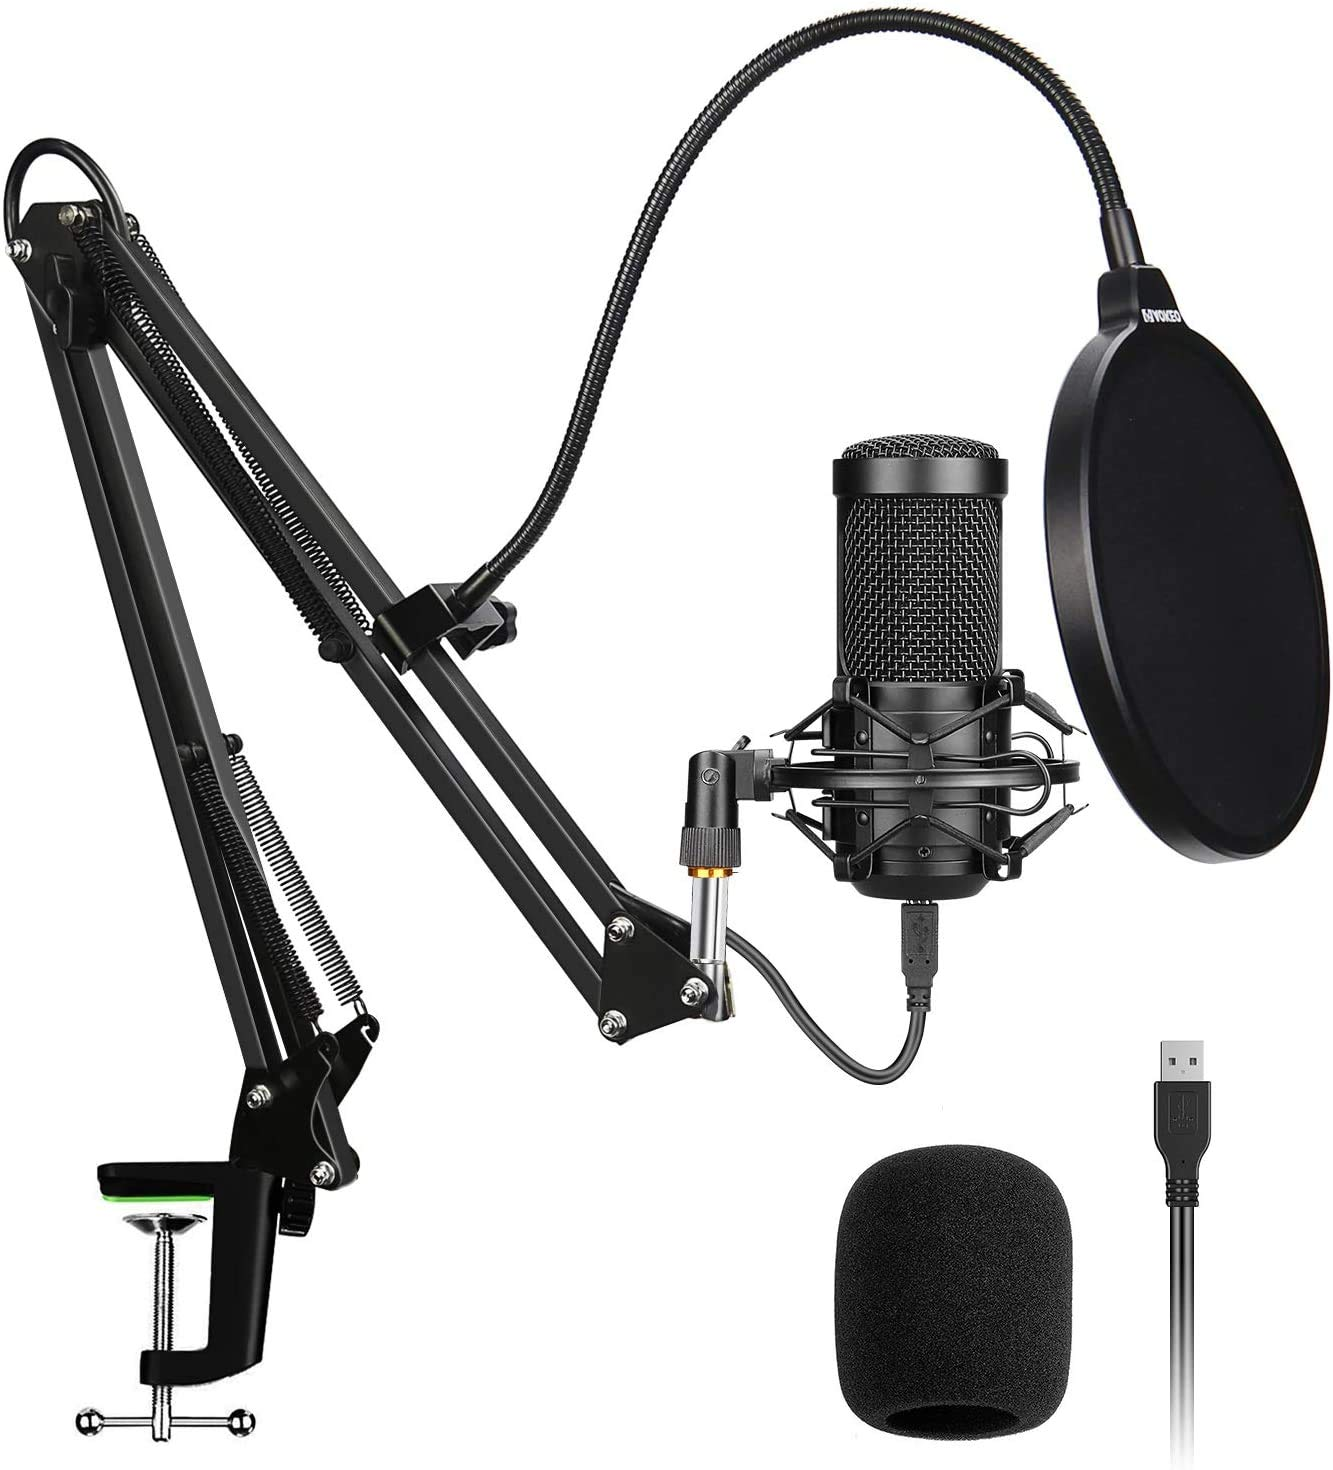 USB Microphone Kit 192KHZ/24BIT,Mic Podcast Condenser Microphone with Professional Sound Chipset,Recording Microphone for PC Gaming,Streaming Podcasting,YouTube (BM-800)